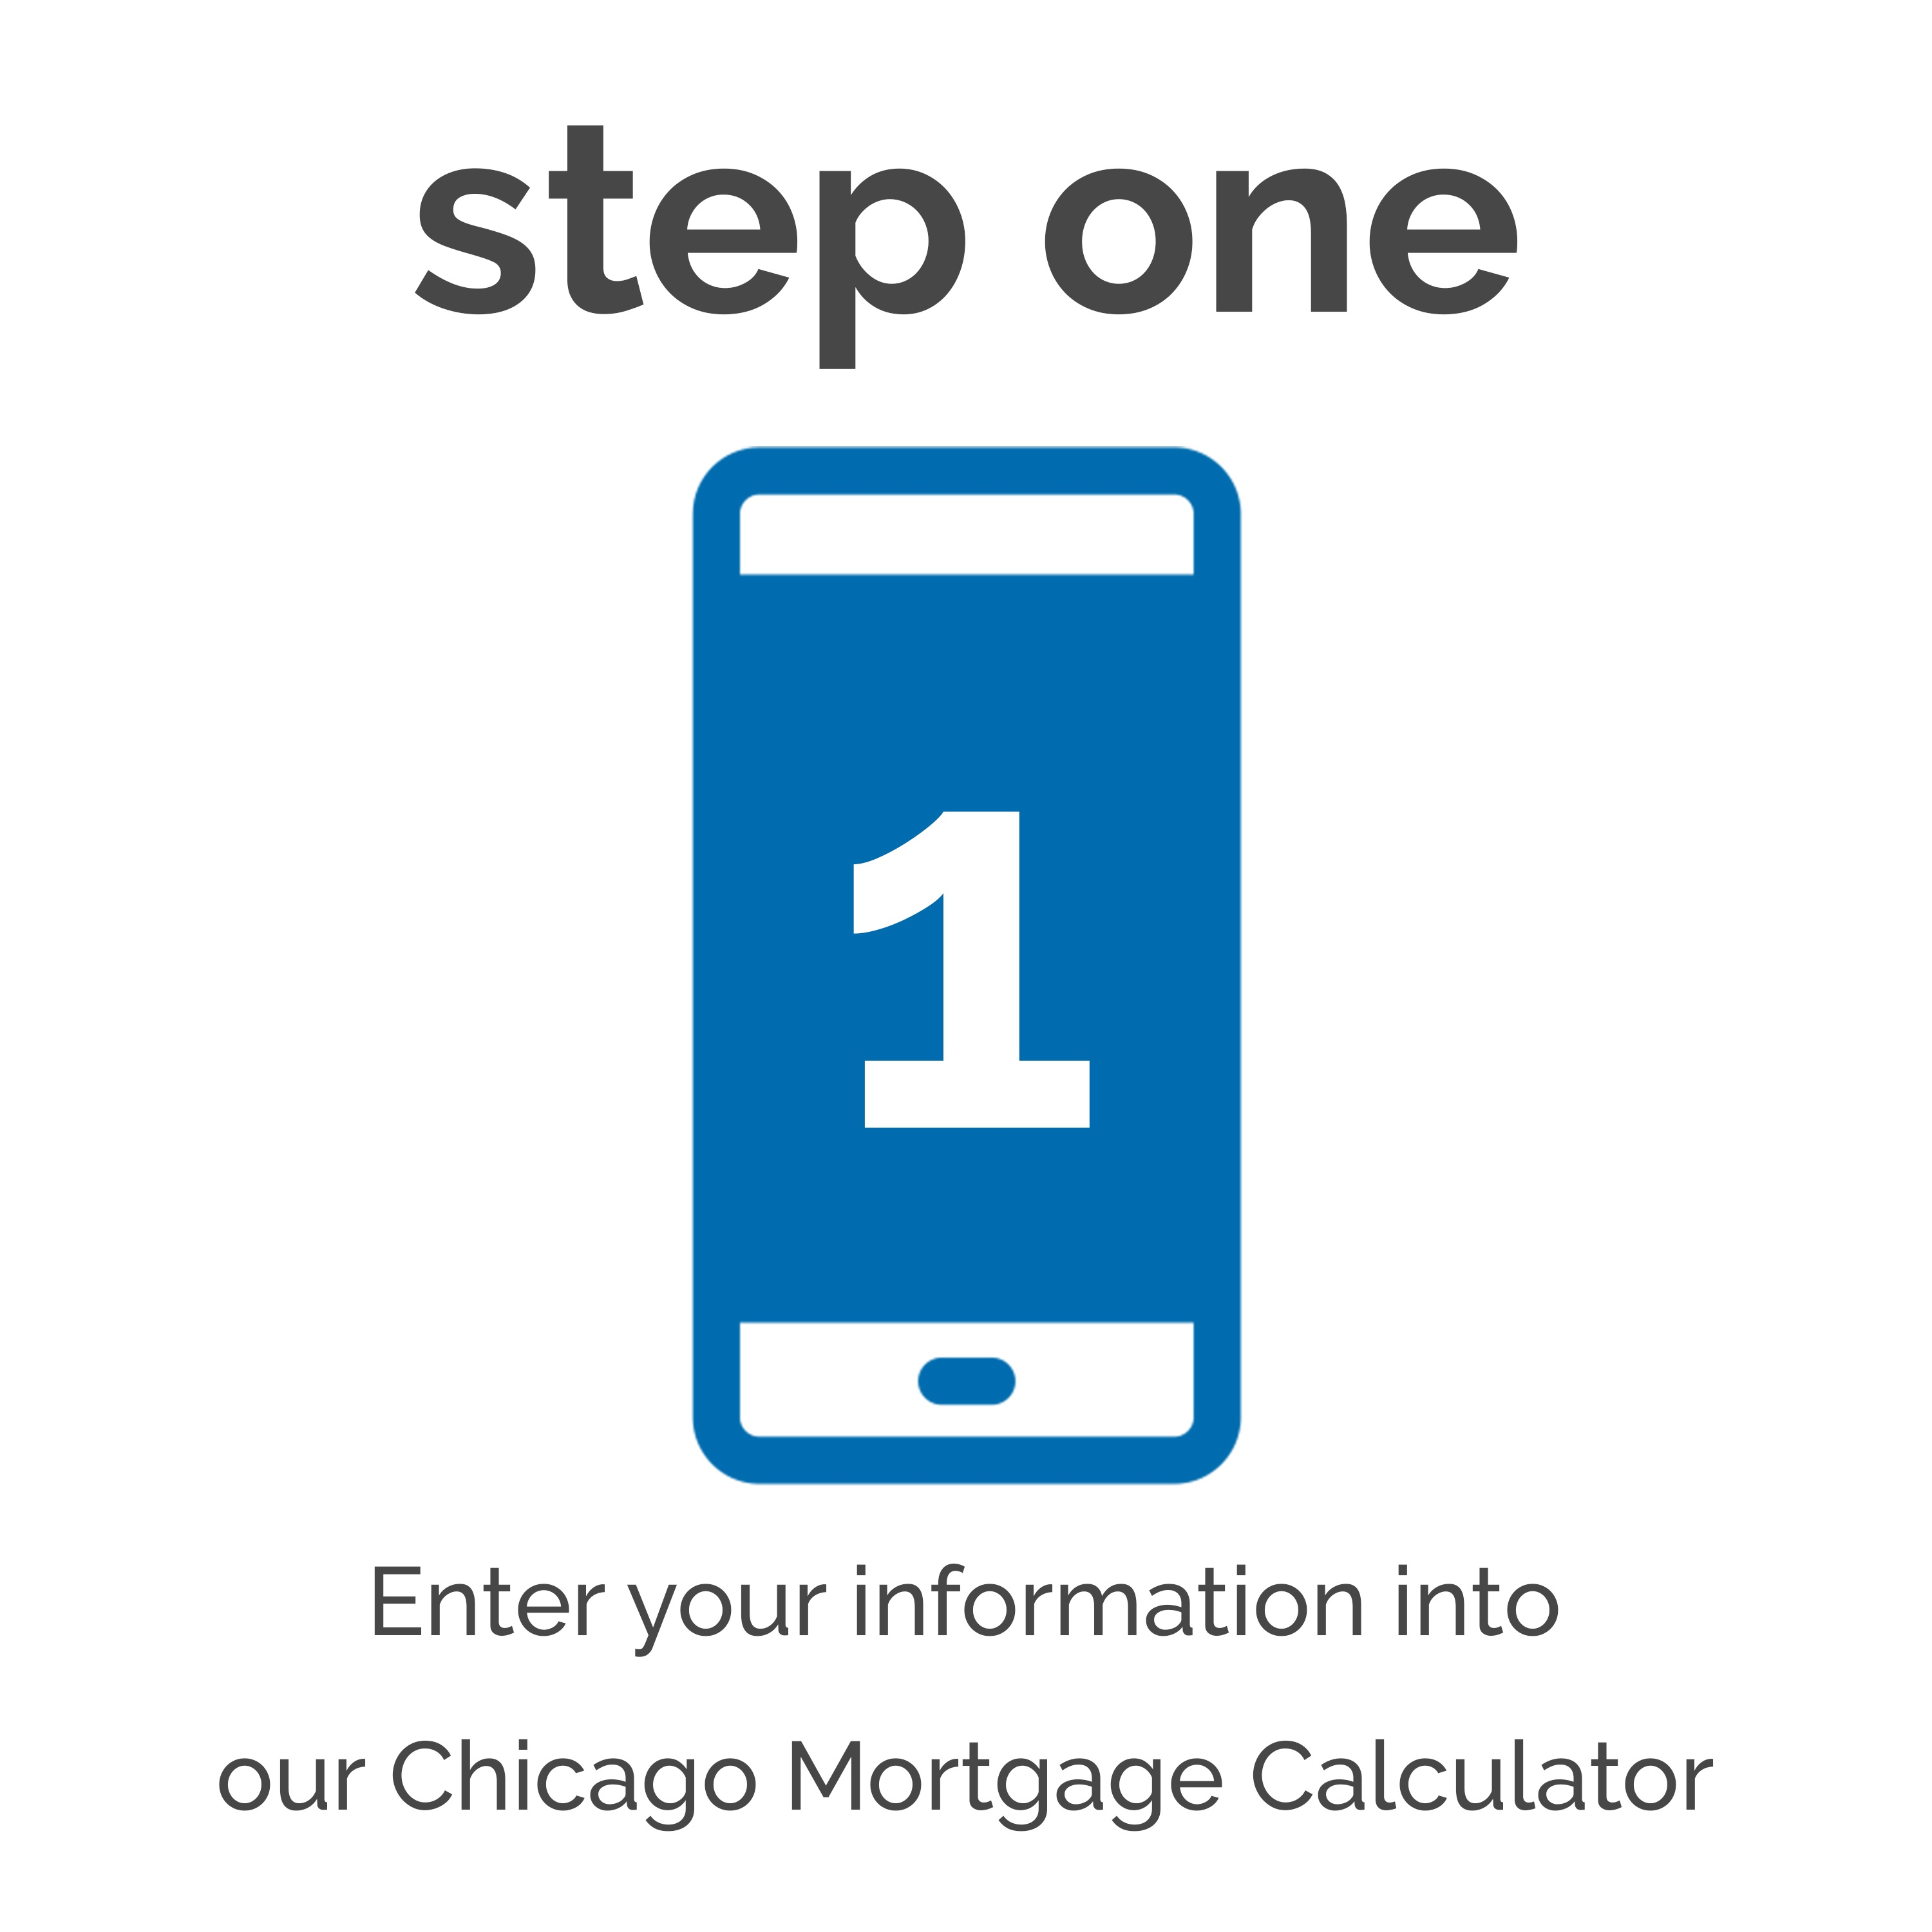 Step one- Enter your information into our Chicago Mortgage Calculator